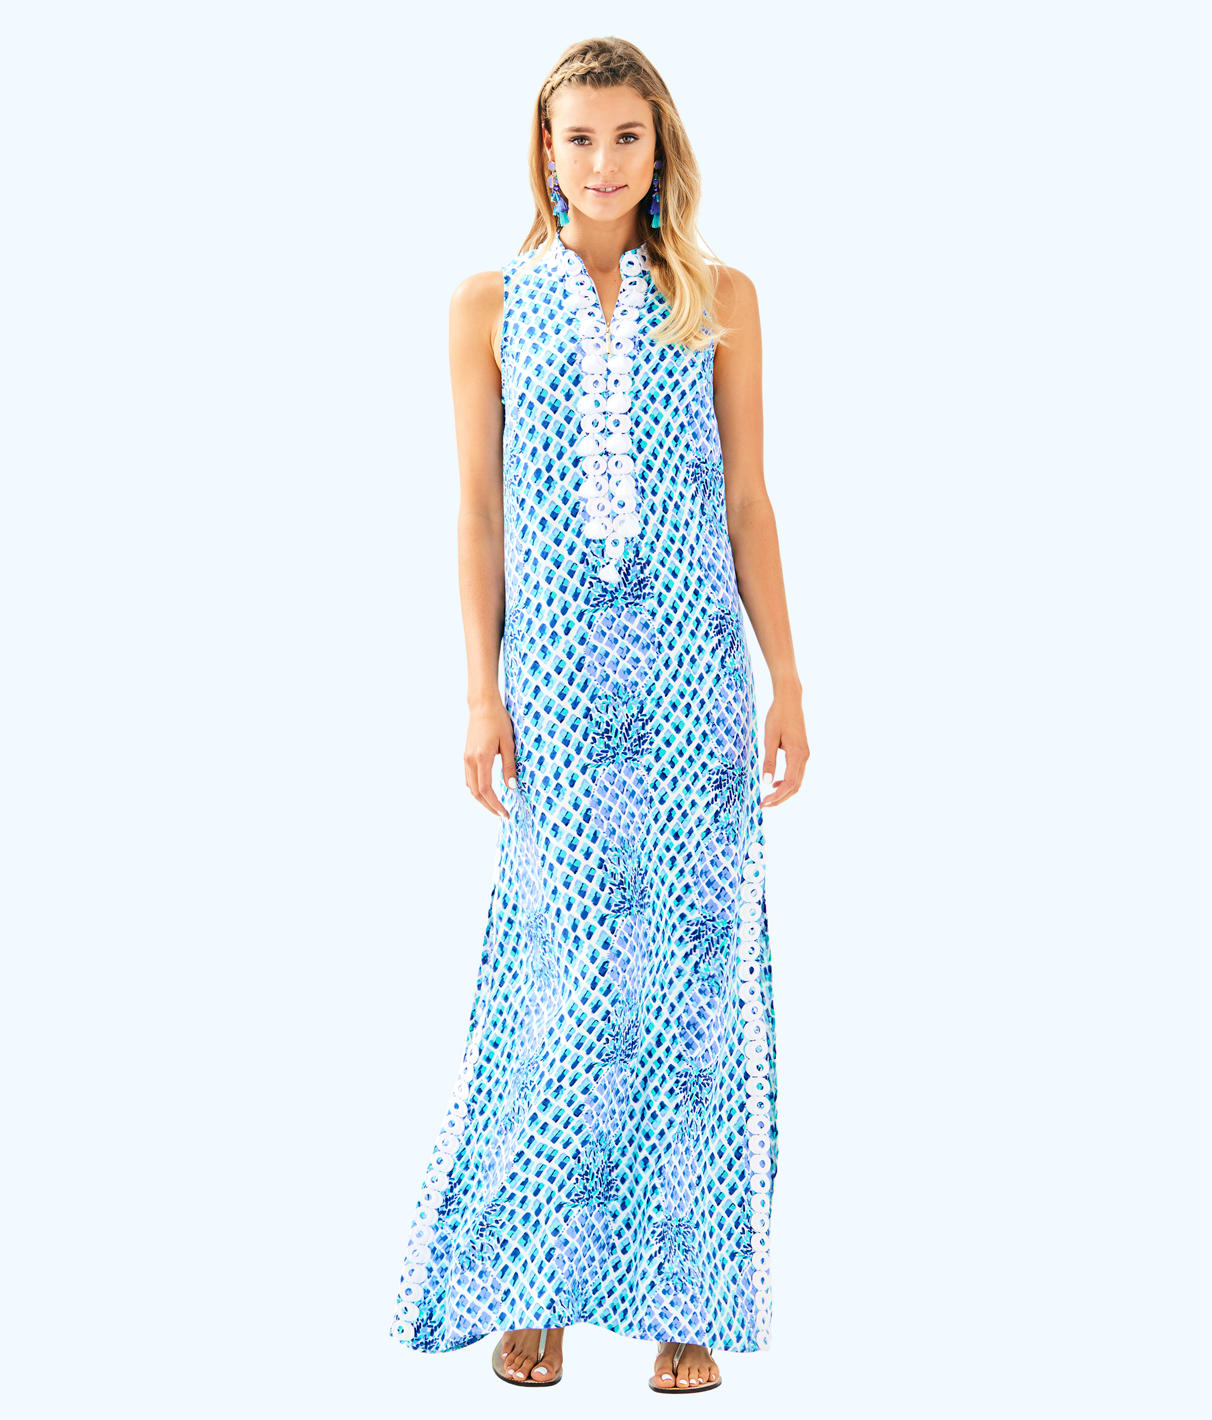 Lilly Pulitzer Lilly Pulitzer Womens Jane Maxi Dress